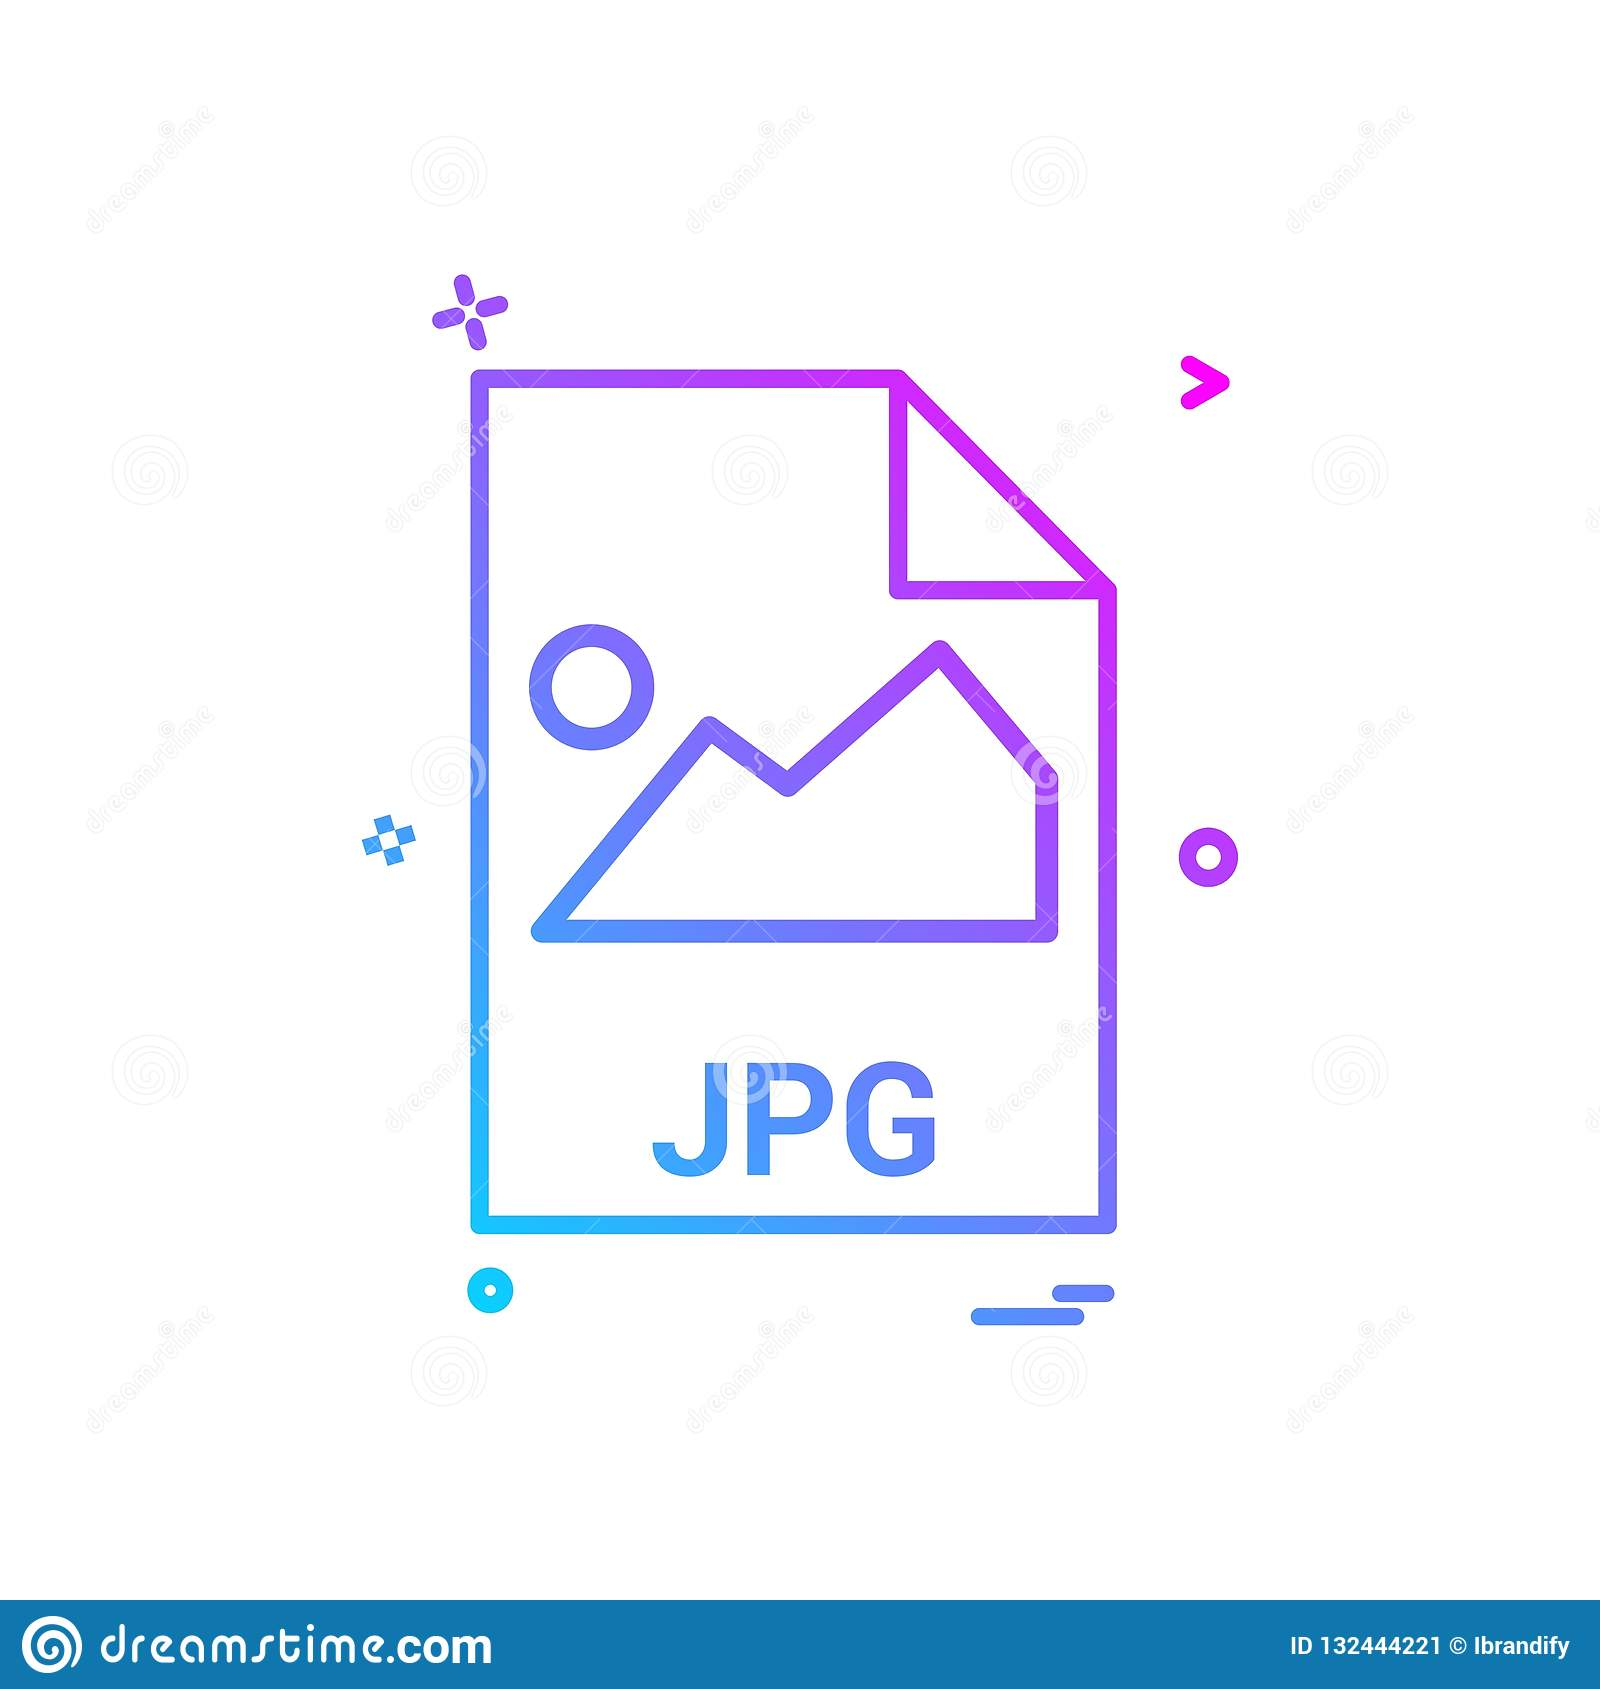 Jpg File File Extension File Format Icon Vector Design Stock